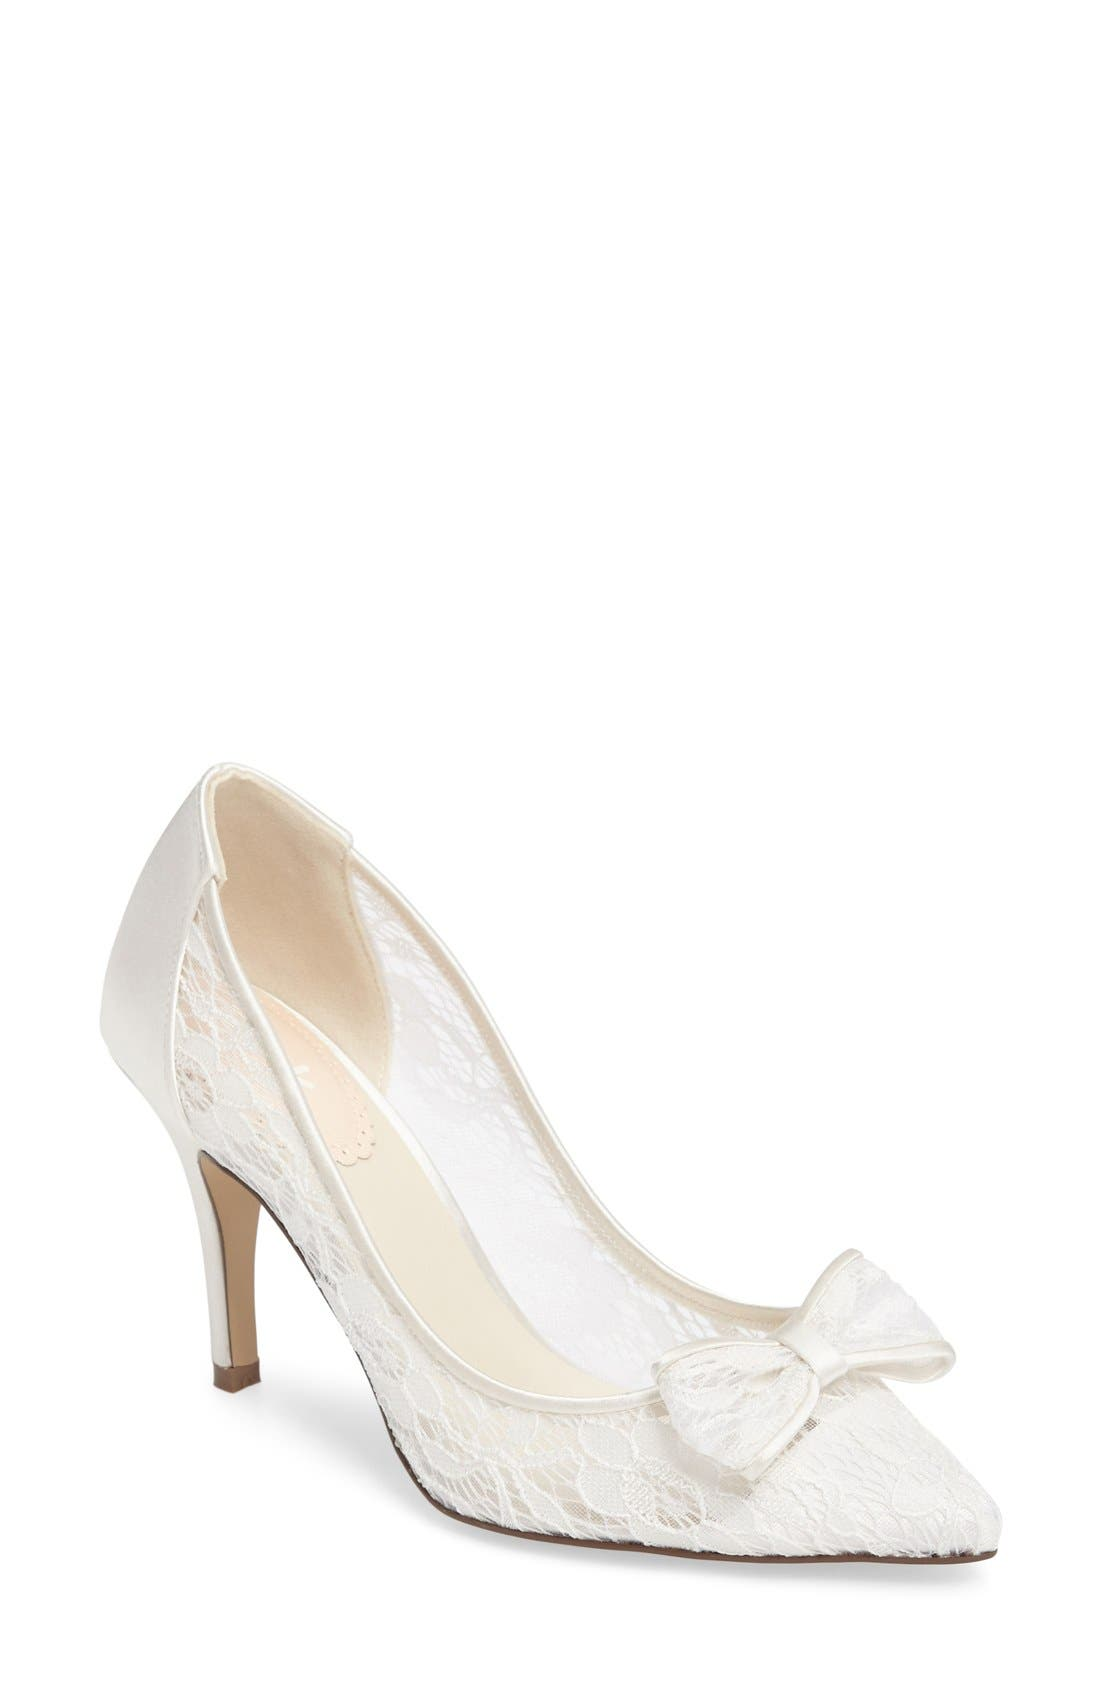 Promise Pointy Toe Lace Pump,                             Main thumbnail 1, color,                             900